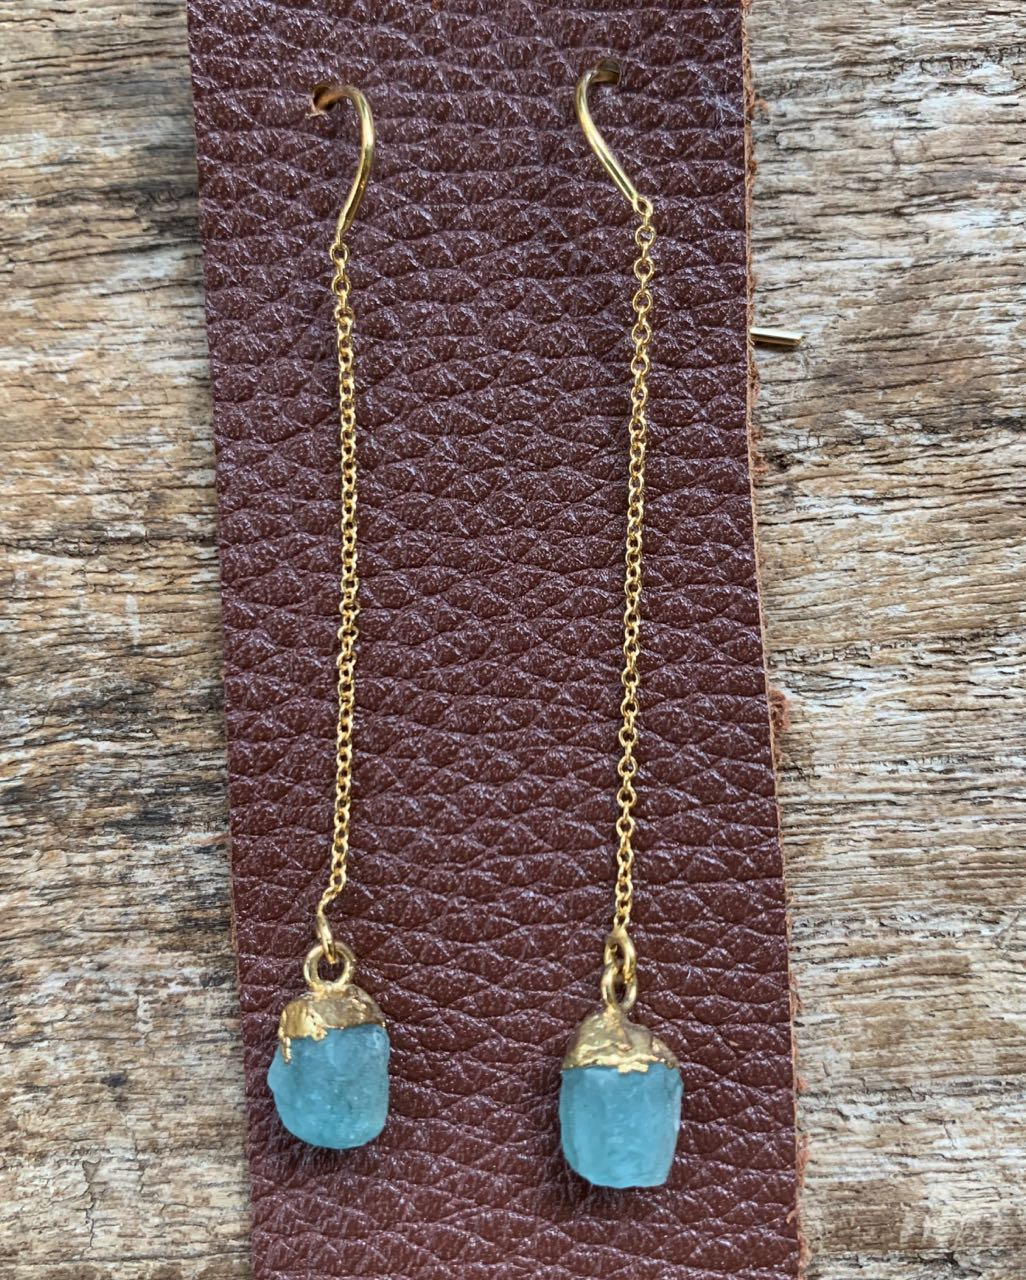 2Dy4: Natural Blue Apatite & 14K Gold-filled Threaders